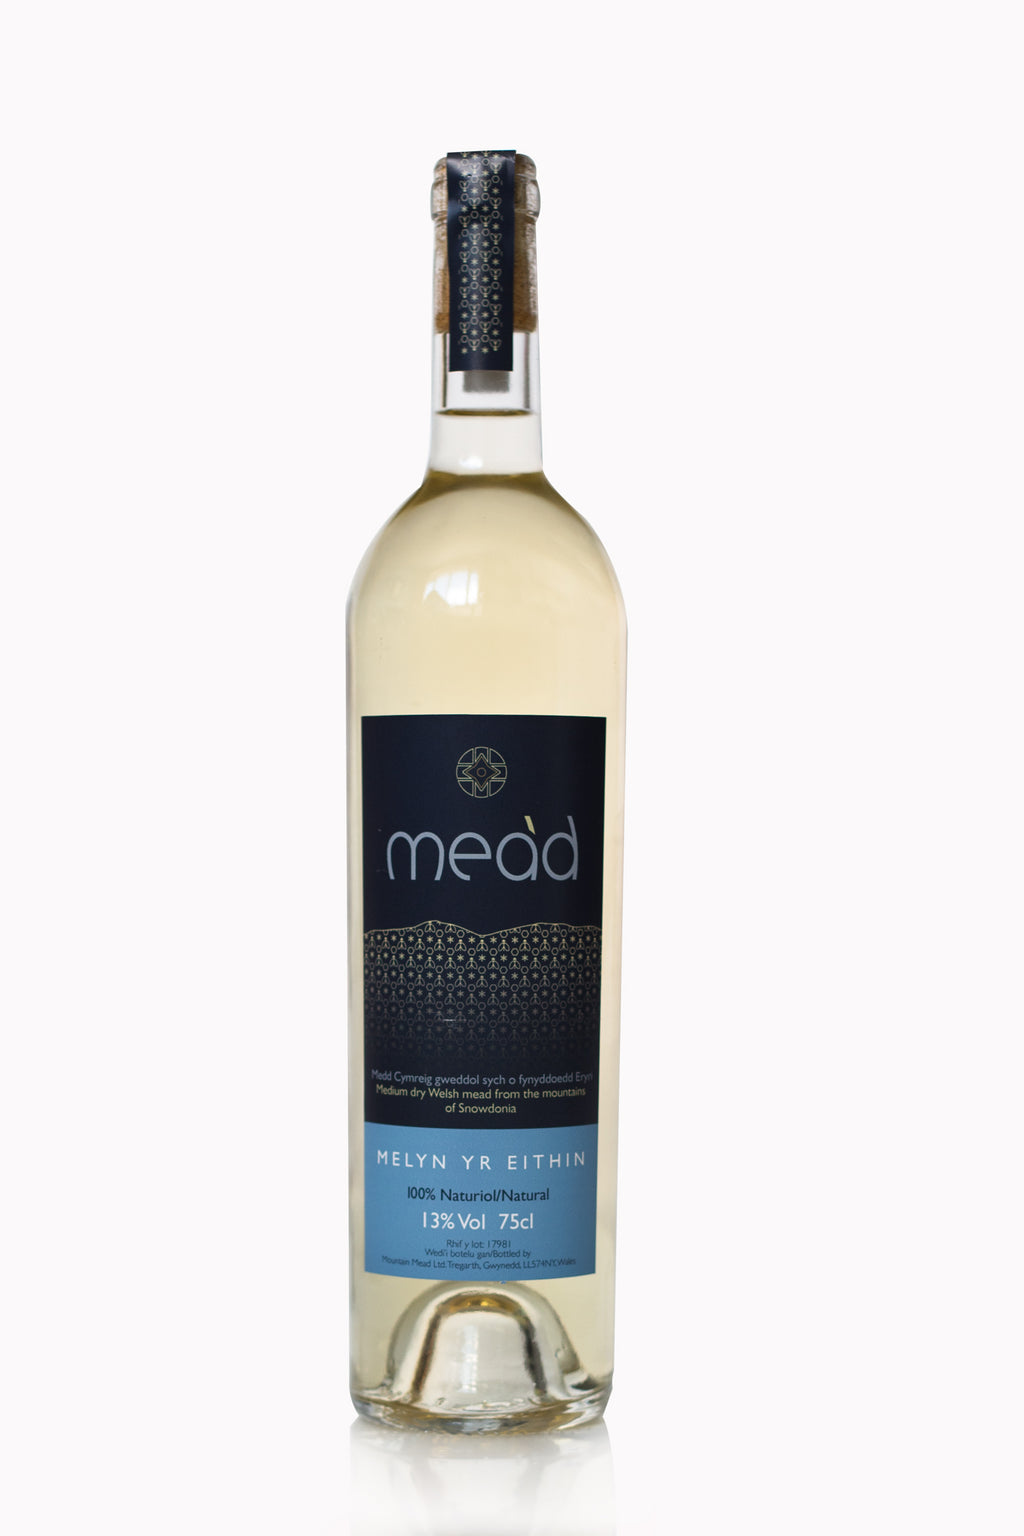 Melyn Yr Eithin - Medium Dry Welsh Mead